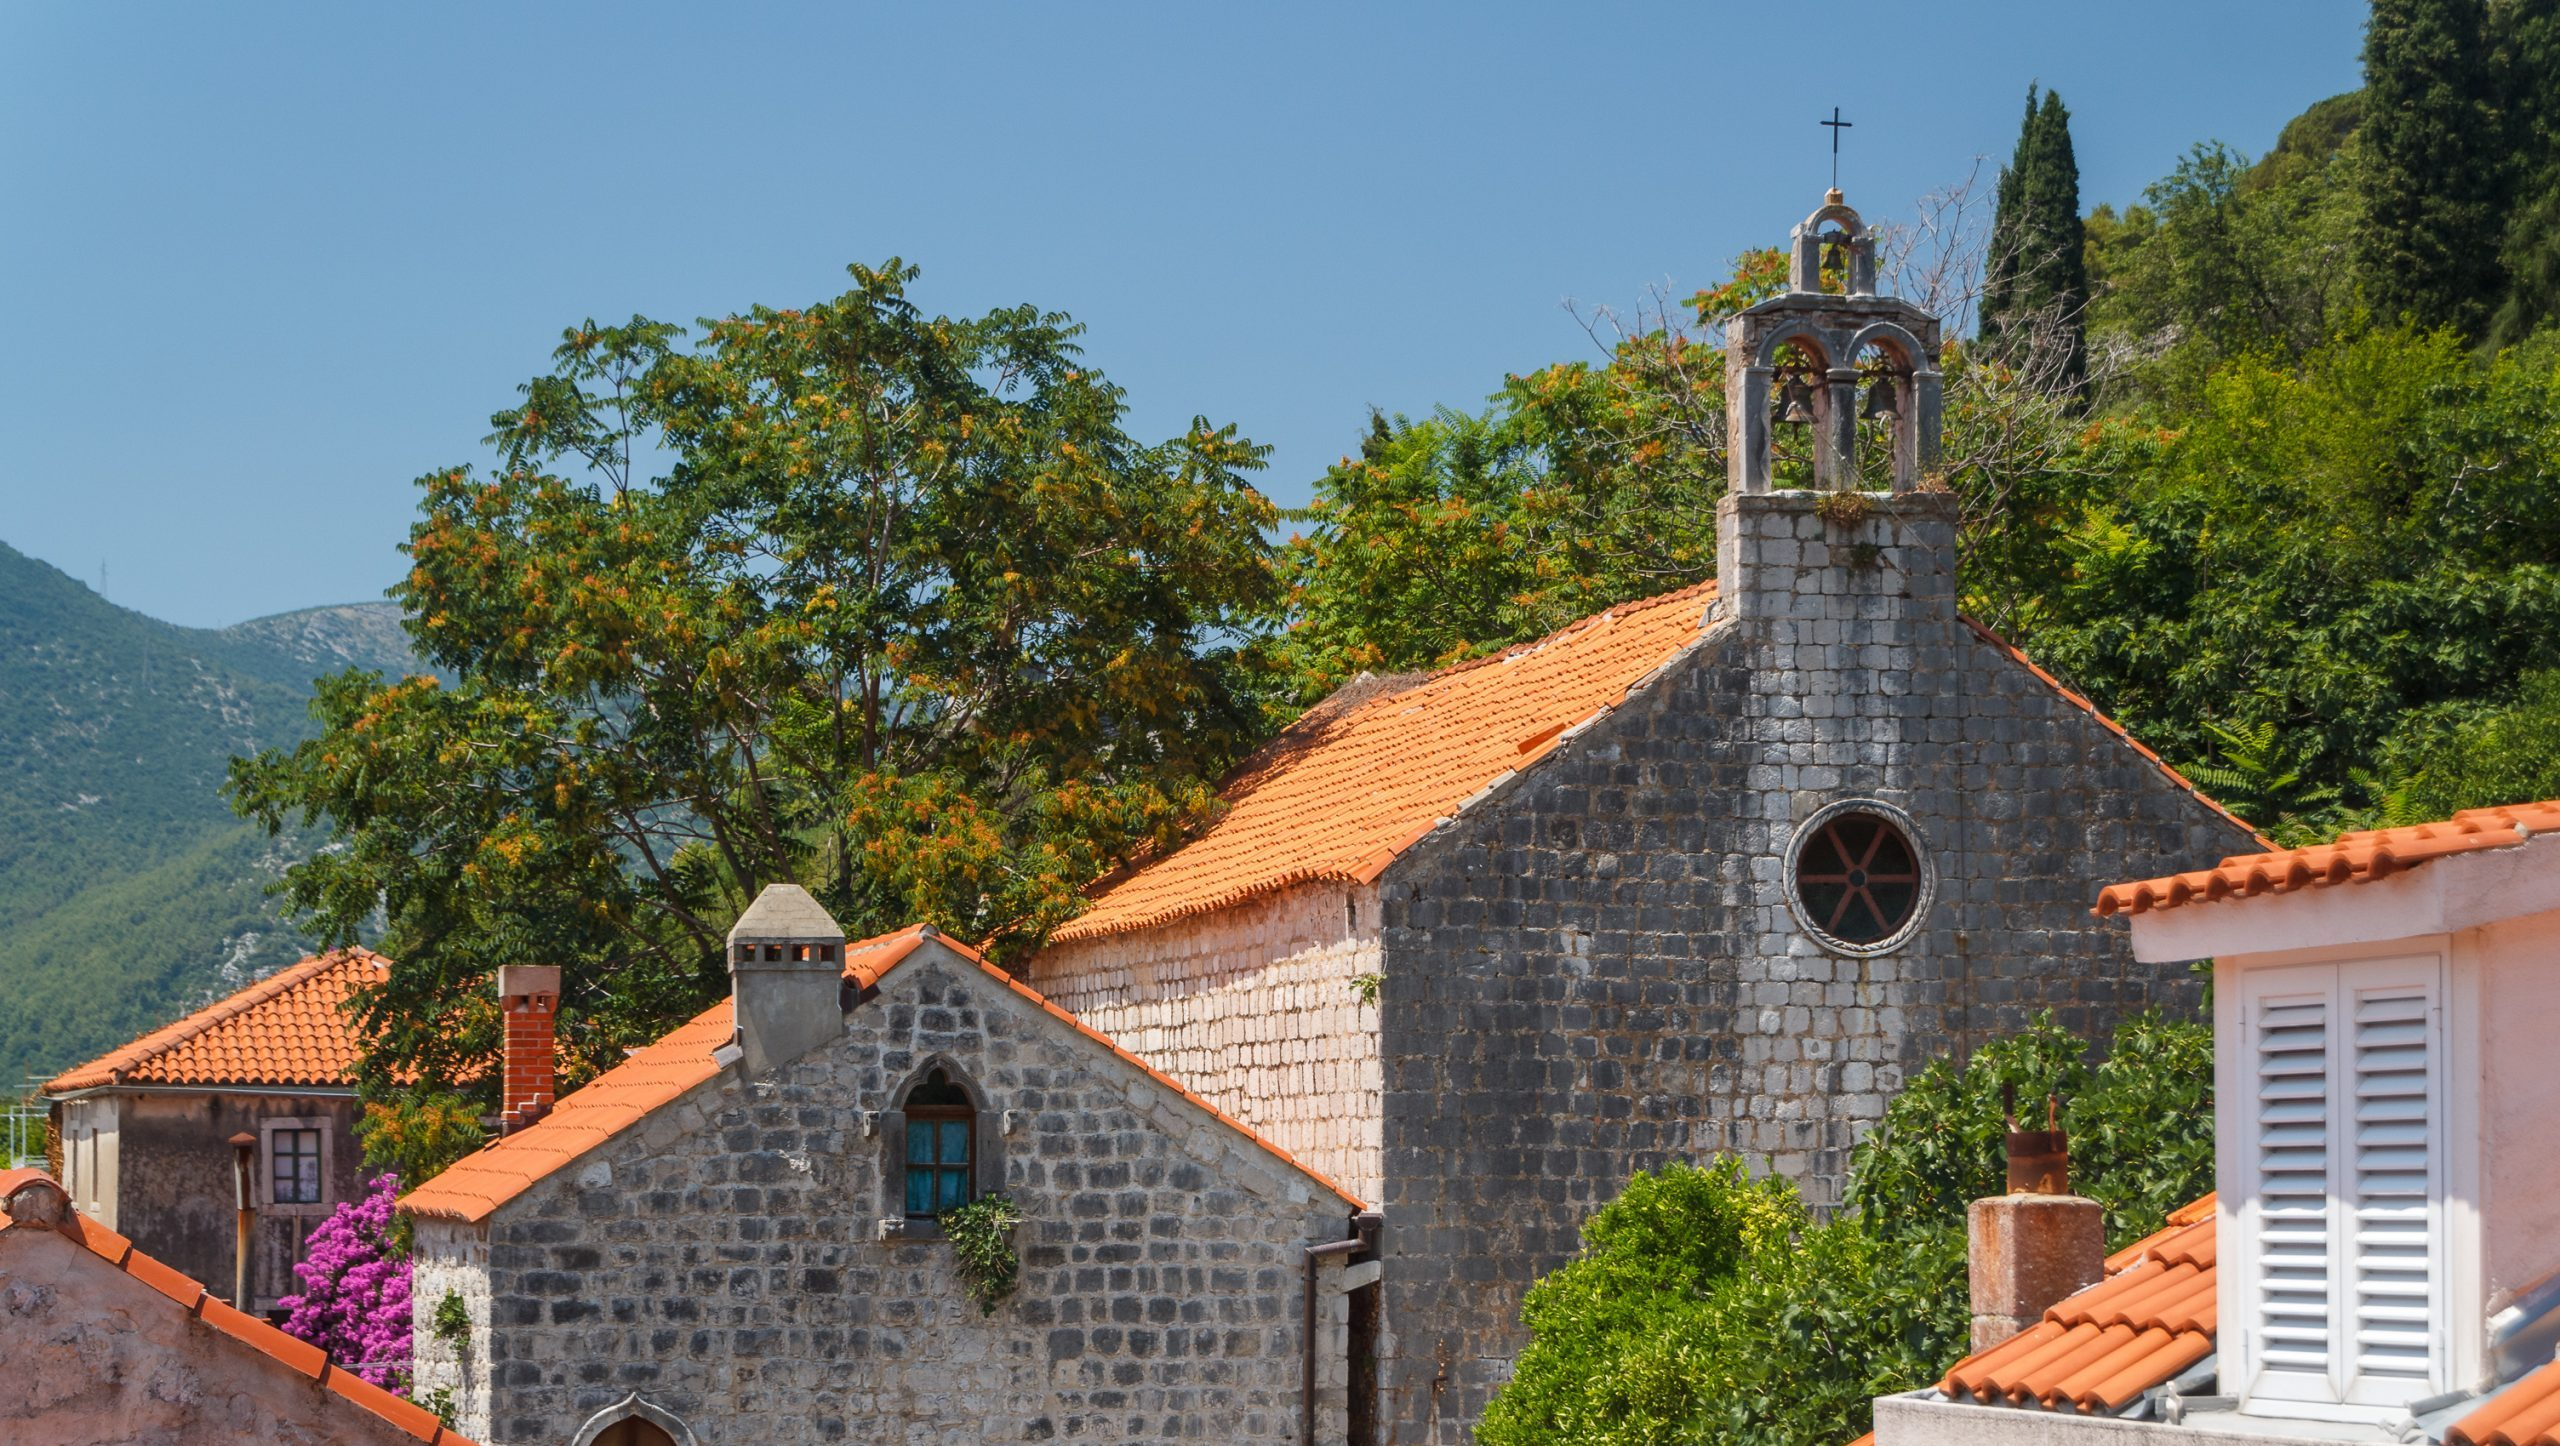 Explore The City Of Mali Ston On The Wine And Oyster Tasting Experience At The Pelješac Peninsula